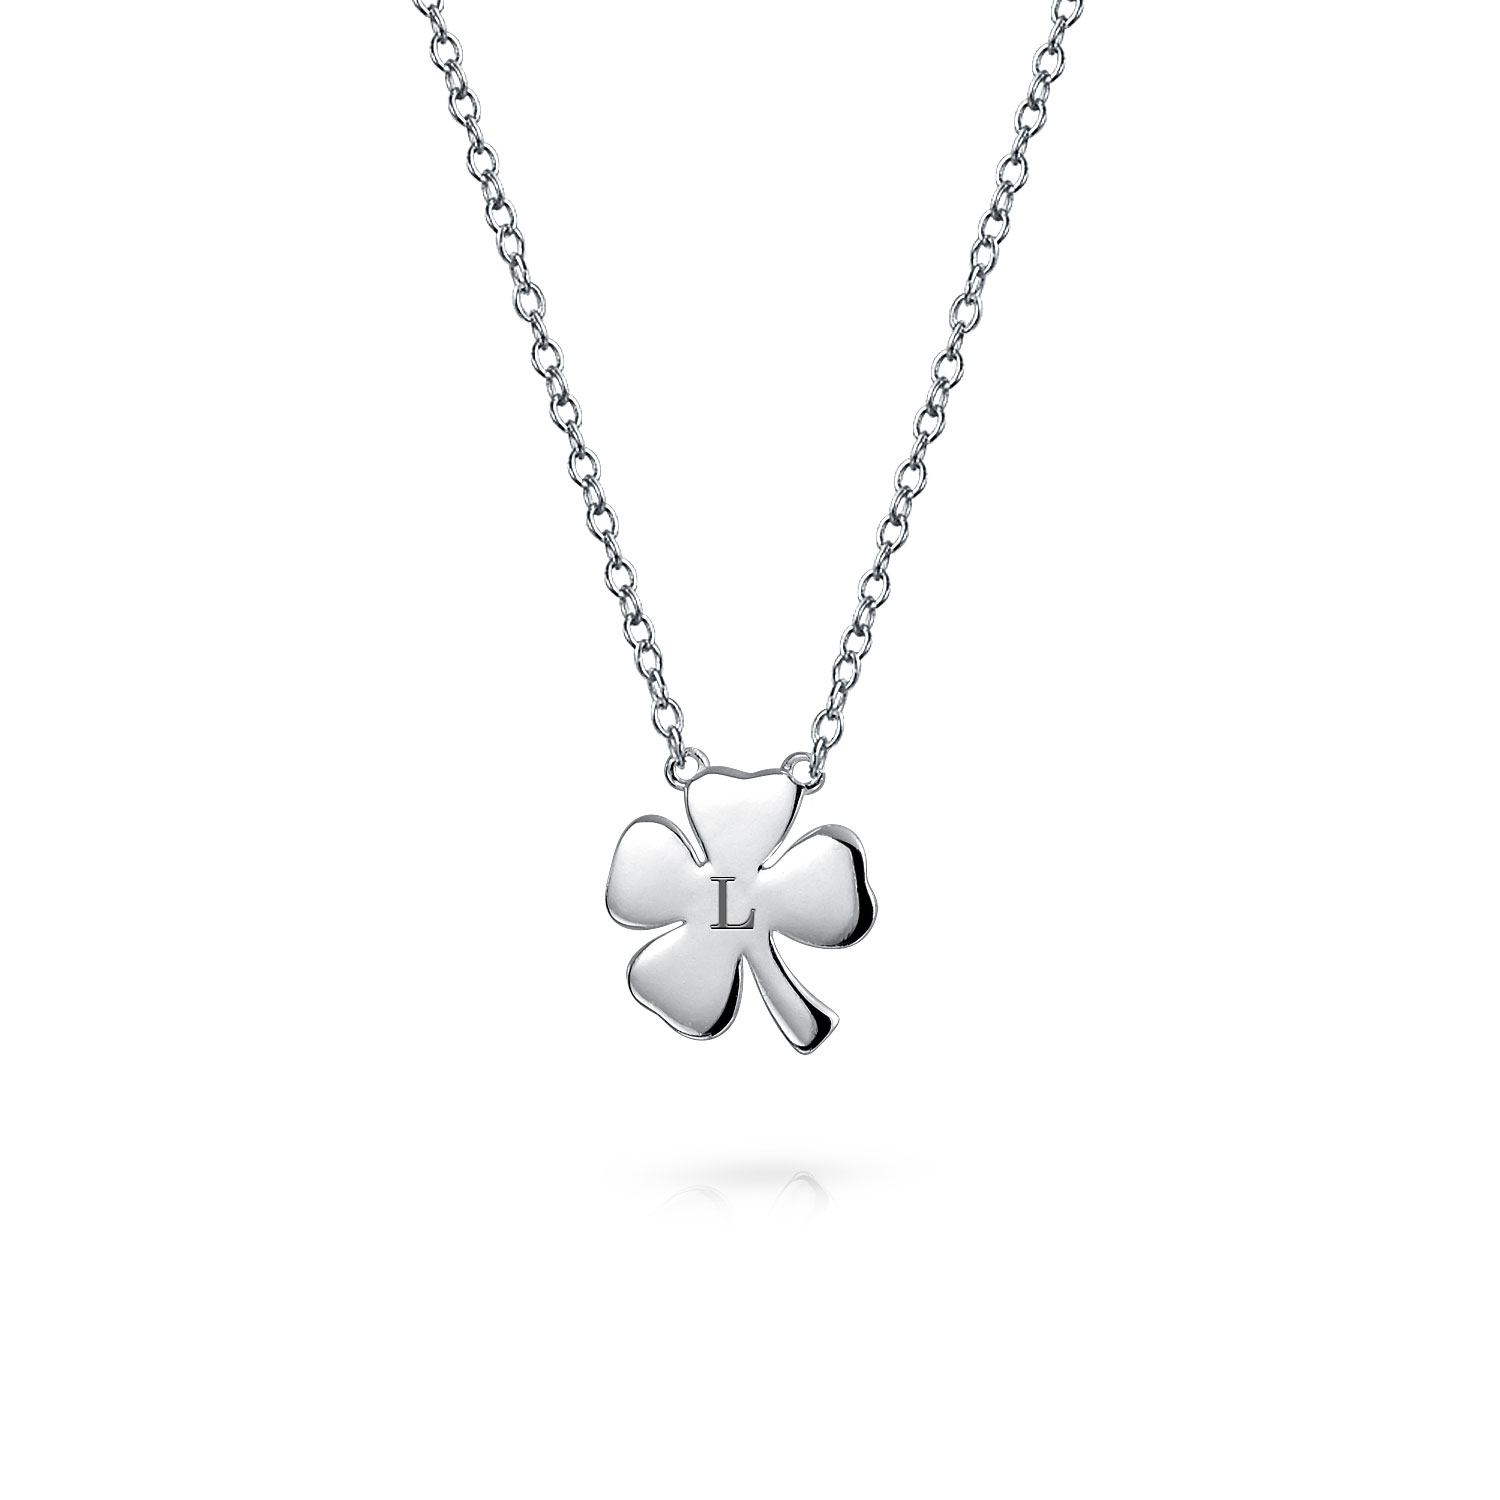 Irish Shamrock Good Luck Charm Four Leaf Clover Pendant Necklace For Women  For Teen 925 Sterling Silver Regarding Most Current Lucky Four Leaf Clover Dangle Charm Necklaces (View 14 of 25)